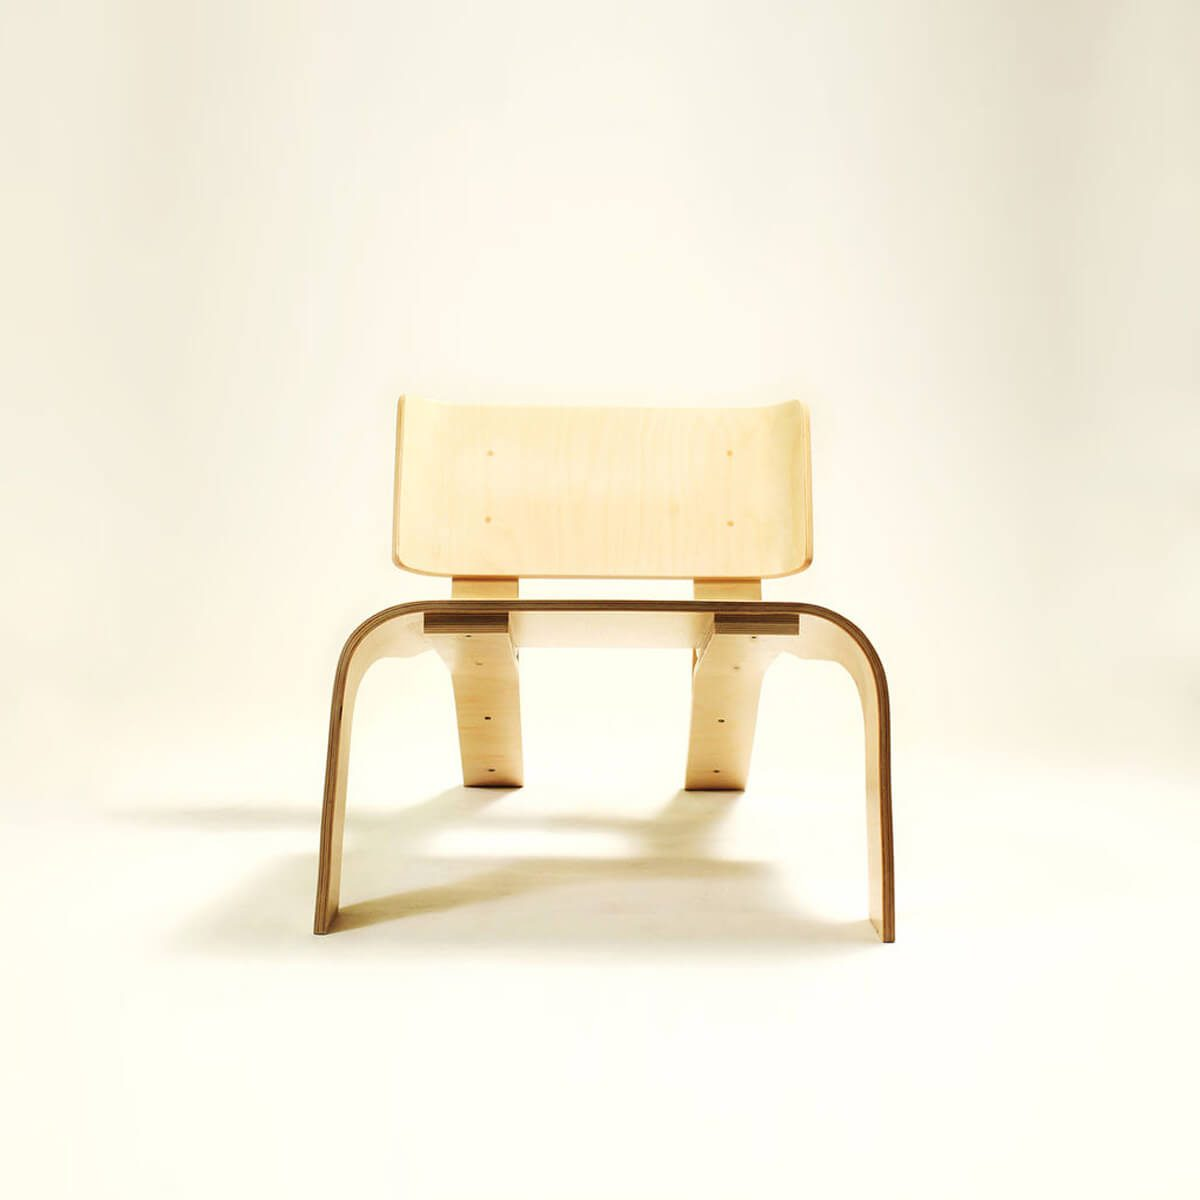 A Bent Plywood Chair You Can Make Yourself